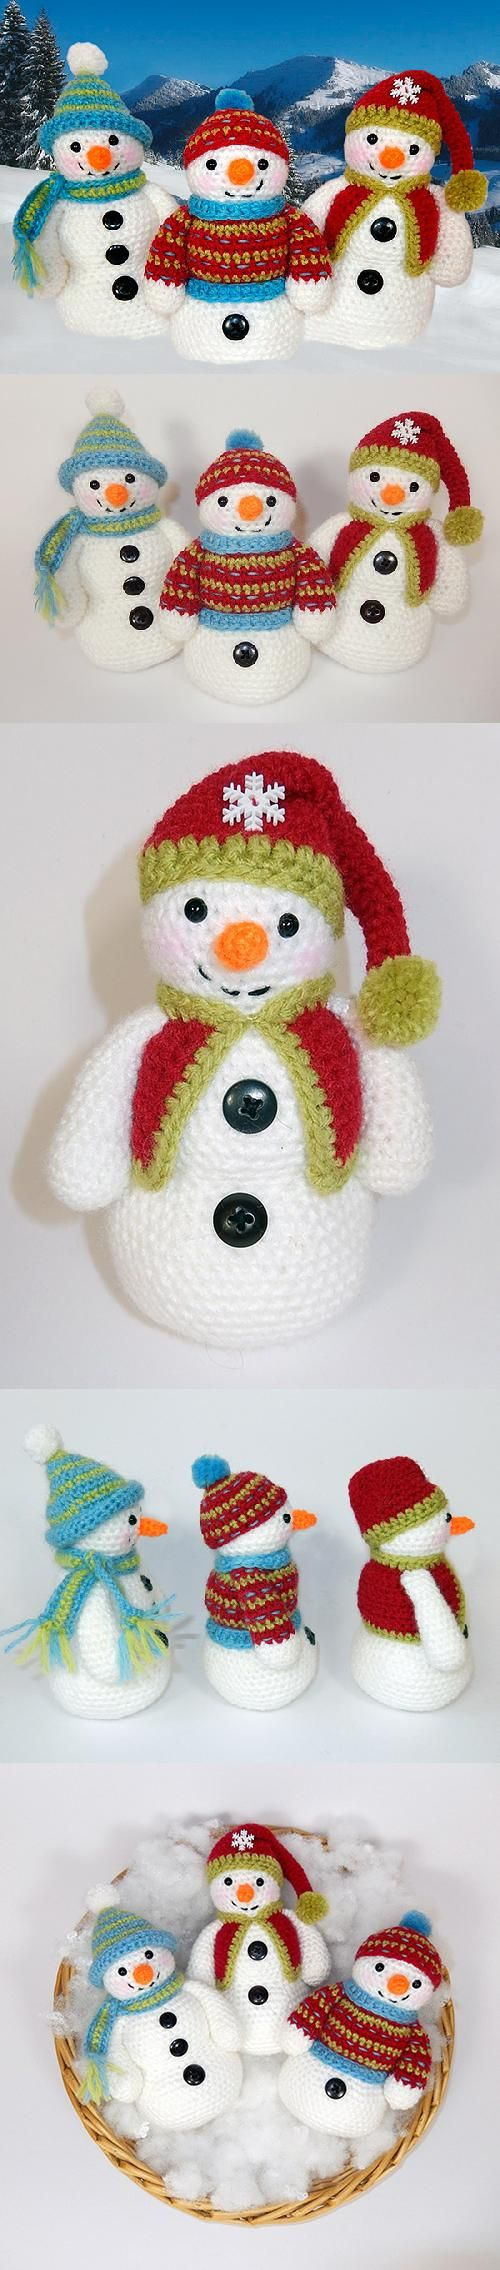 Frosty, Freezy and Fred amigurumi pattern by Janine Holmes at Moji ...